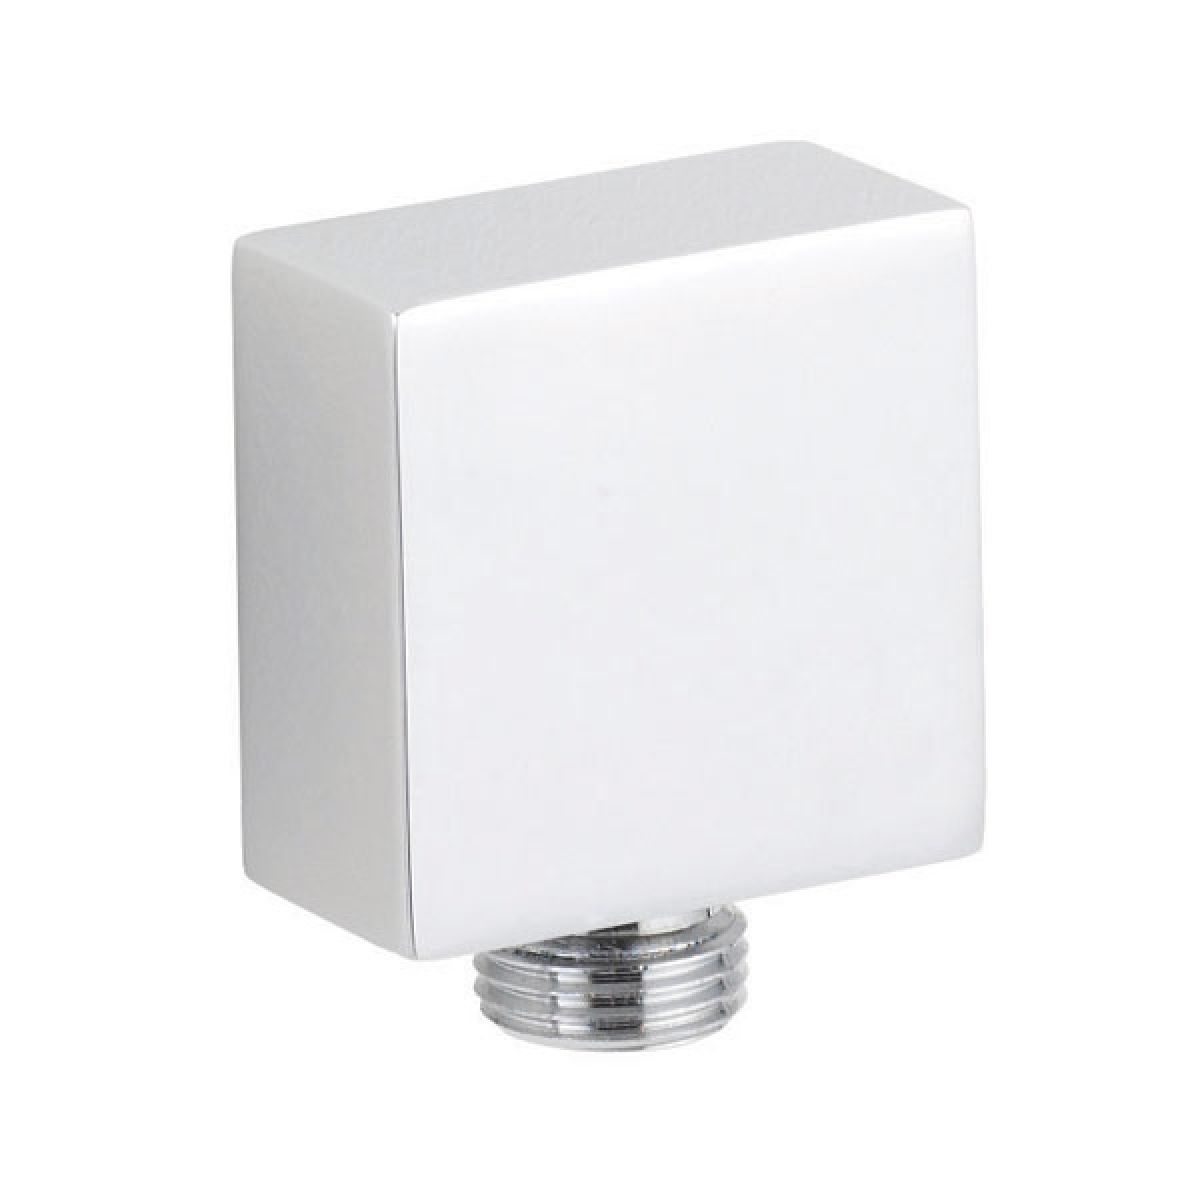 Ultra Square Outlet Elbow